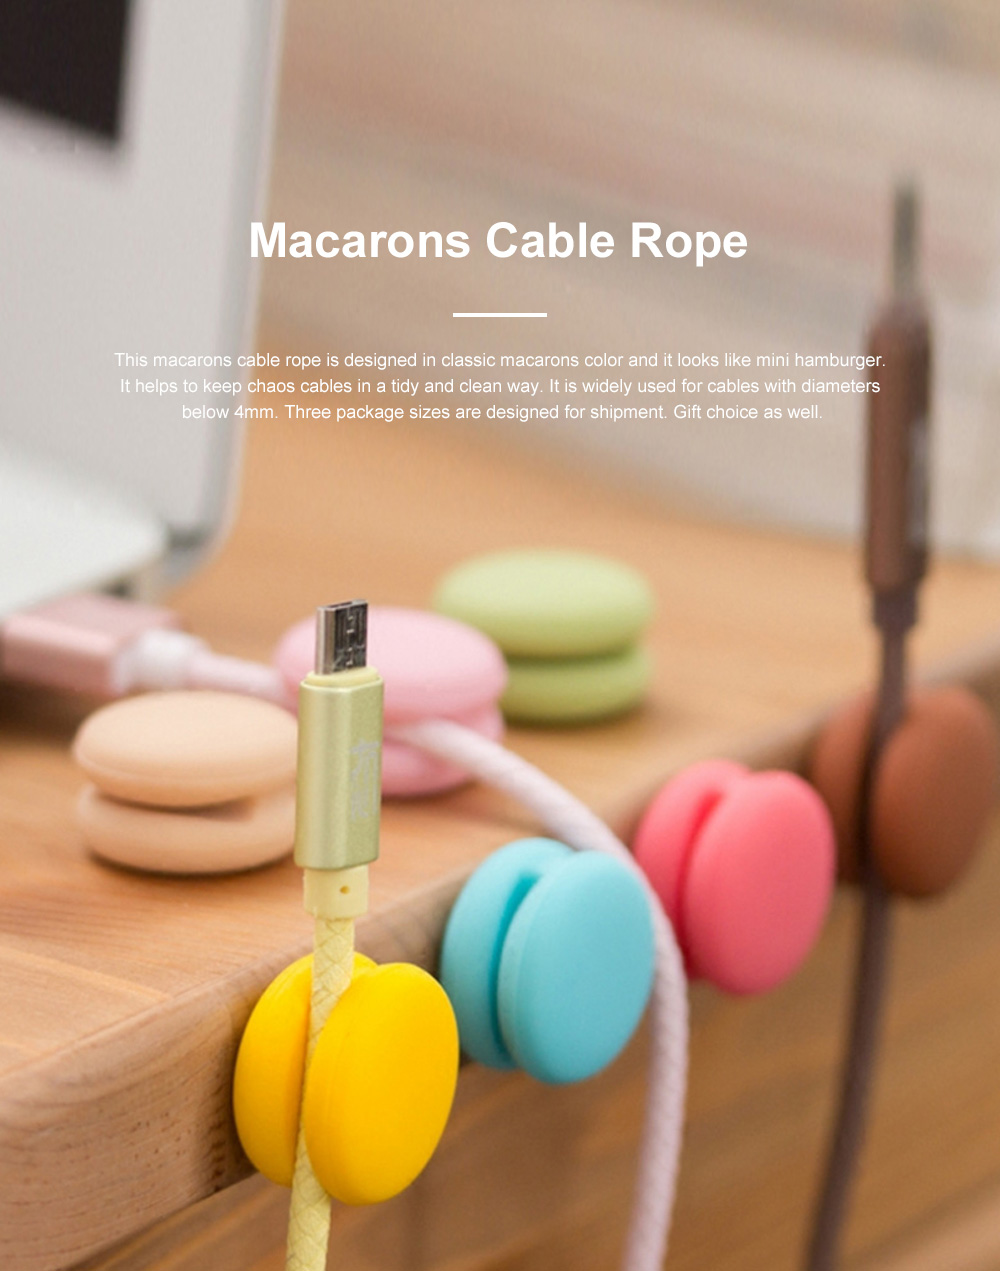 IWO Multifunctional Macarons Cable Wire Wrapper for Office Family Use Creative Convenient Wire Fixing Gadget Easy to Use Cable Rope 0